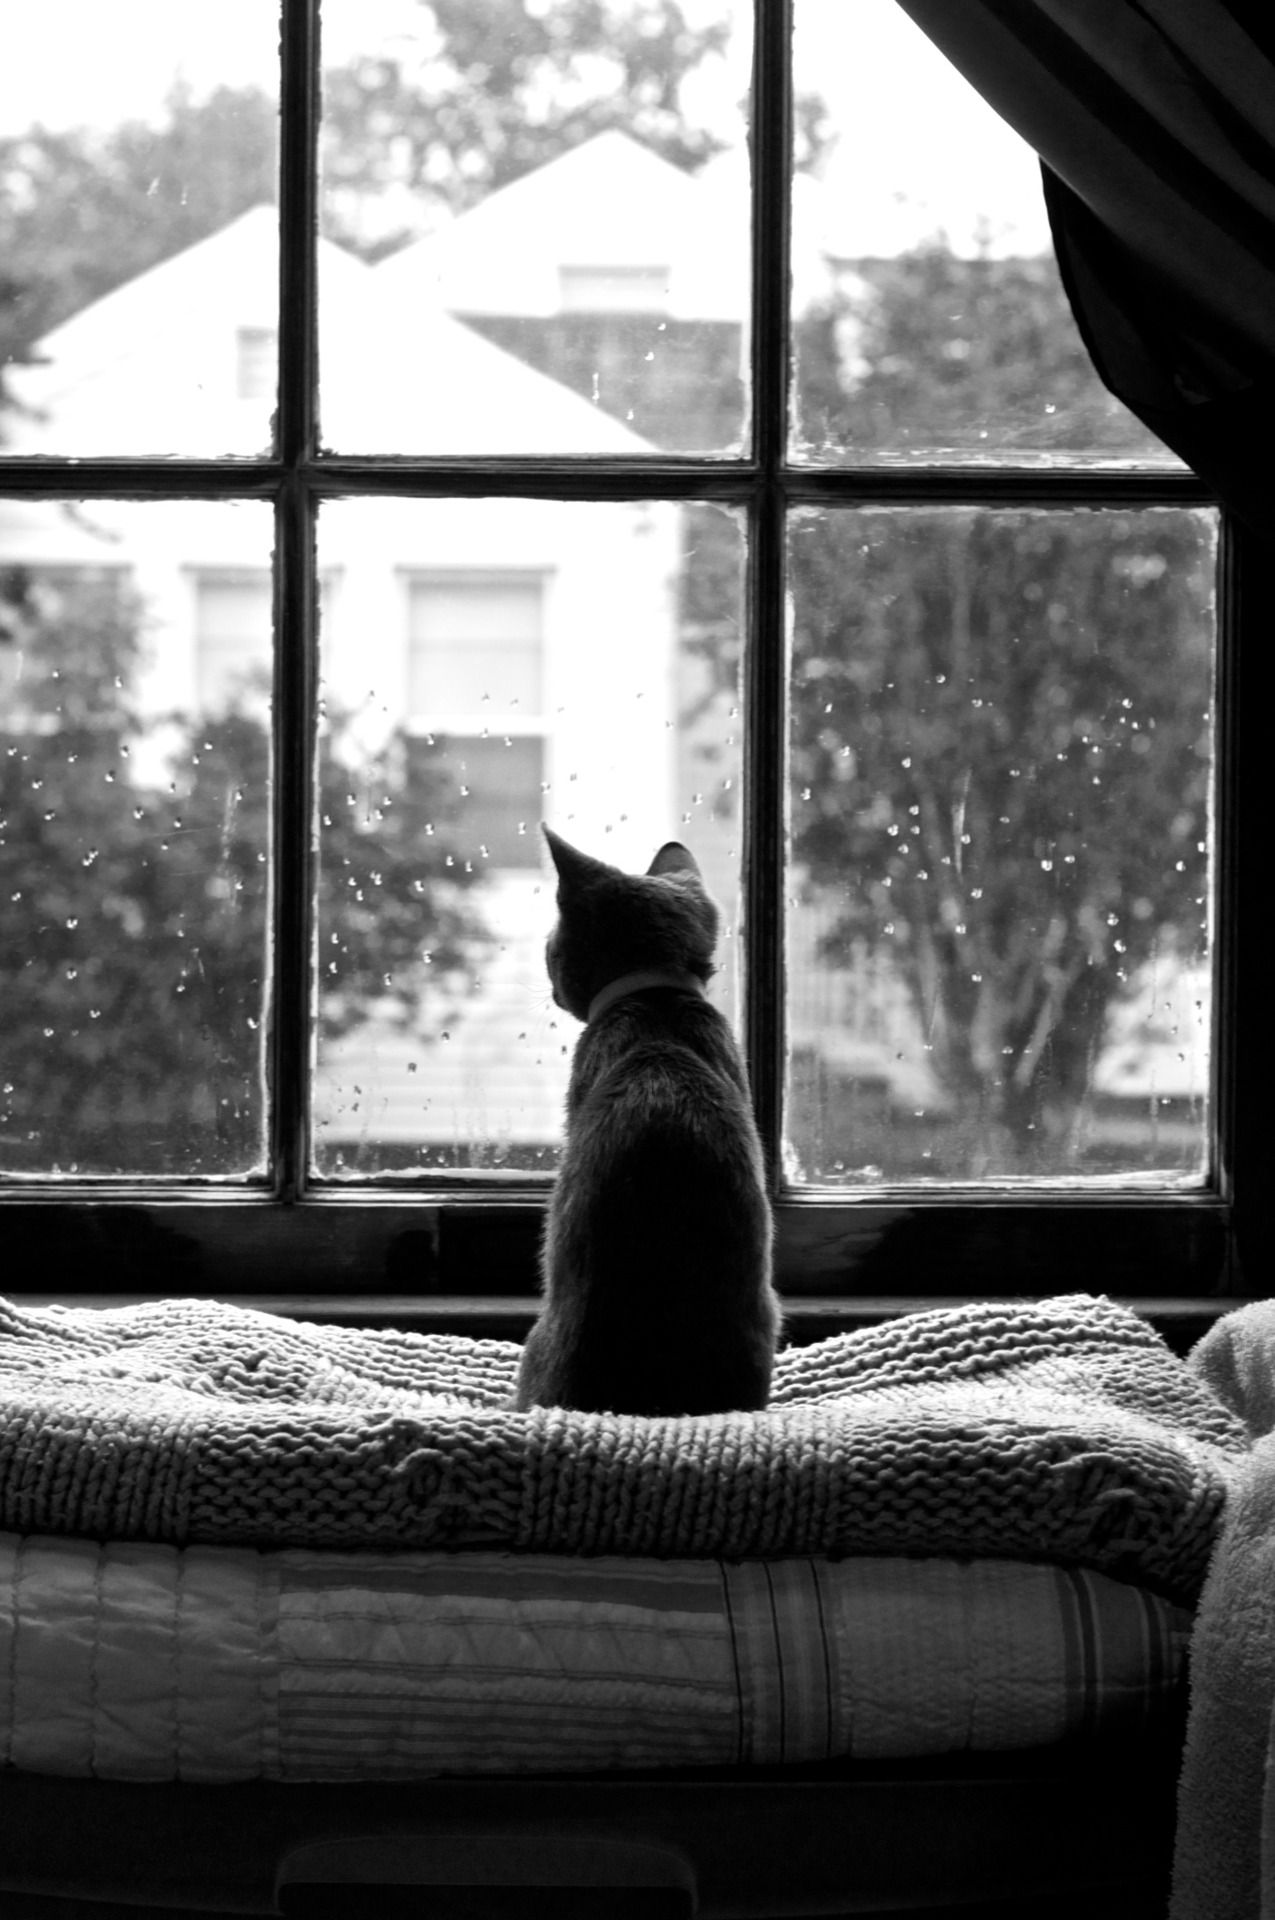 Window bed for cats  pin by mizday on animals  pinterest  cat animal and kitty